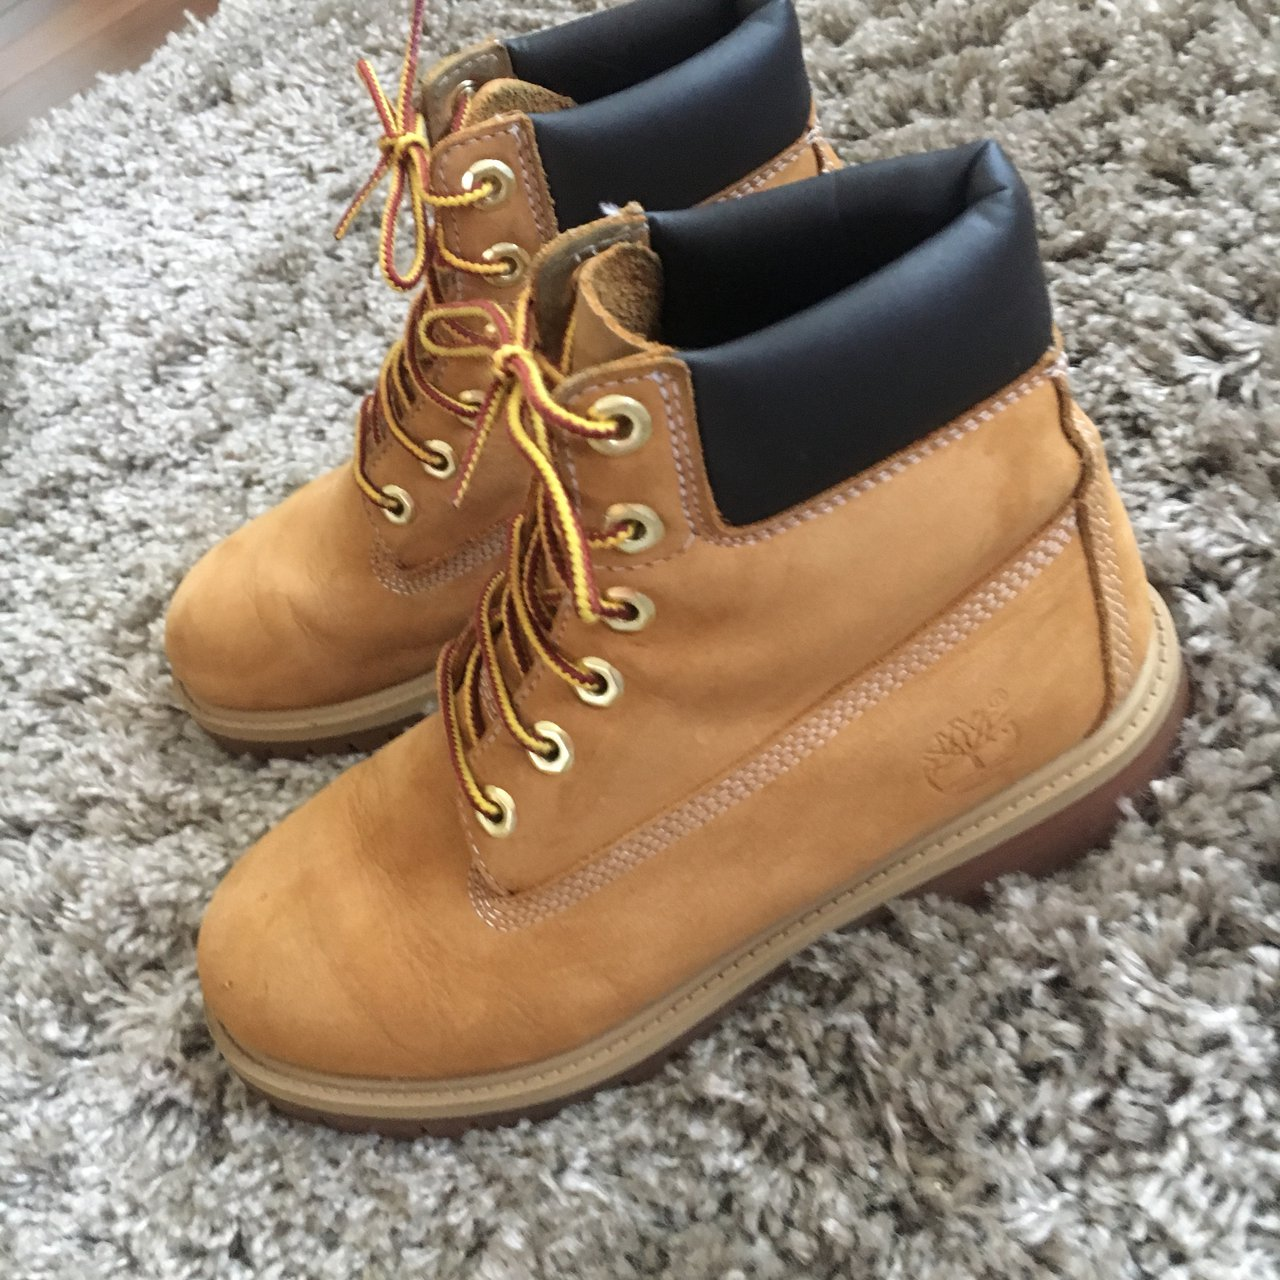 Genuine timberland boots. Worn a handful of times but in No - Depop b514df7c521b